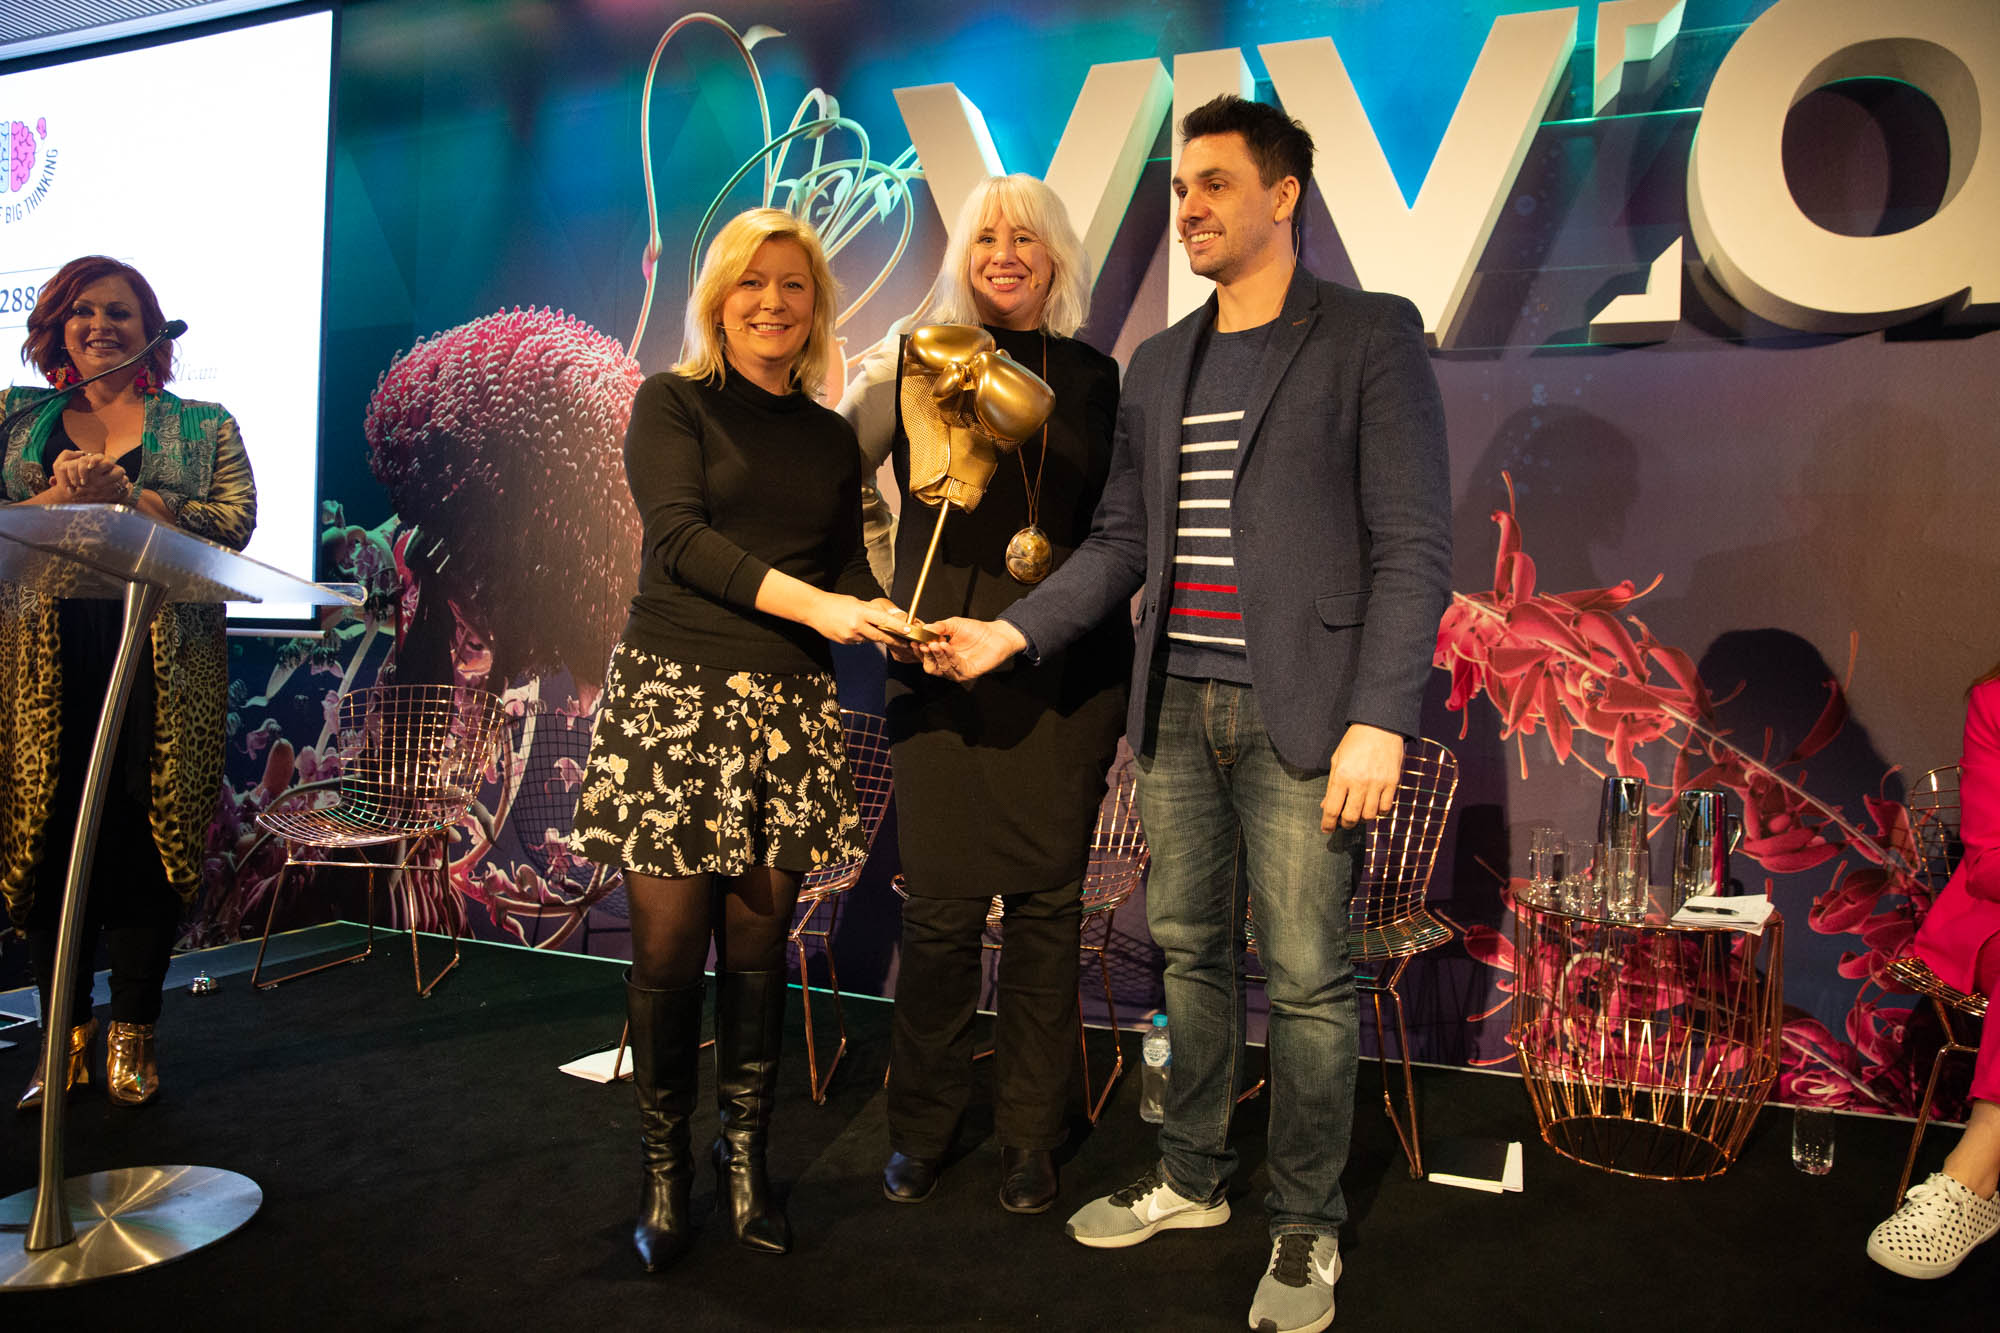 Victors crowned at APG's Battle of Big Thinking 2019 last night under the lights of Vivid Sydney